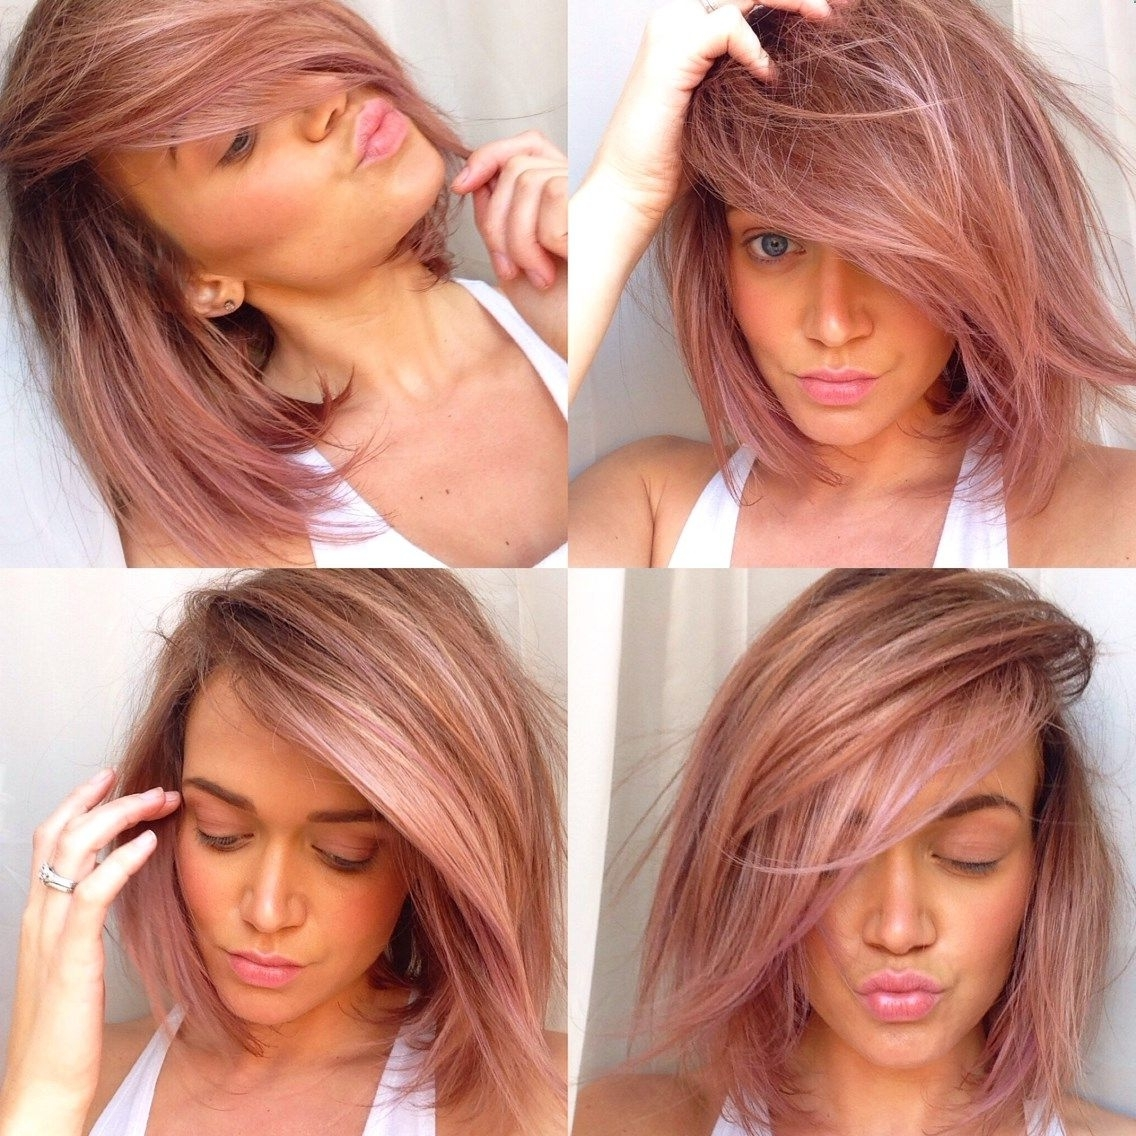 2017 Blonde Bob Hairstyles With Lavender Tint Inside Pink/lavender Tint To Dirty Blonde Hair With Balayage Highlights (View 2 of 20)